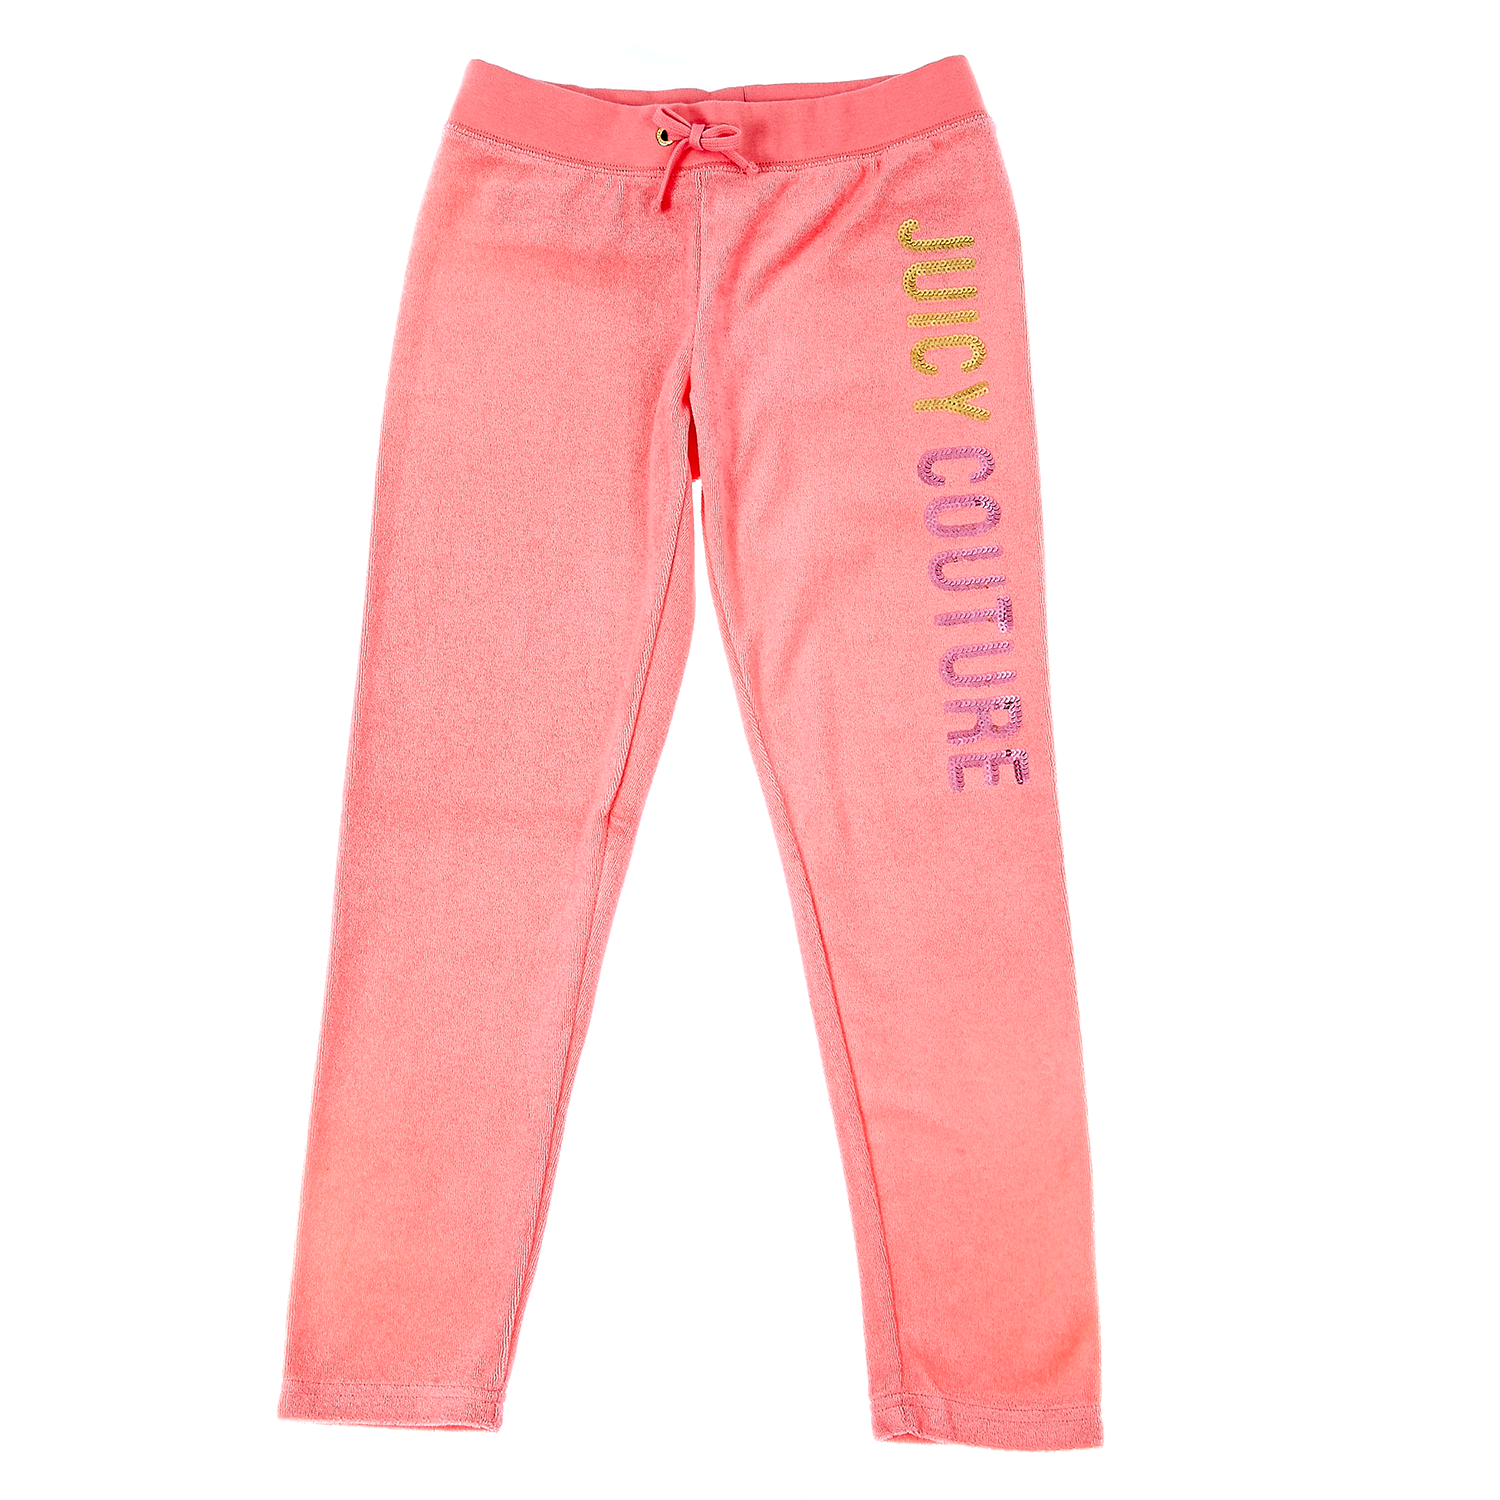 0dd51b26a80 JUICY COUTURE KIDS - Παιδικό παντελόνι Juicy Couture σομών